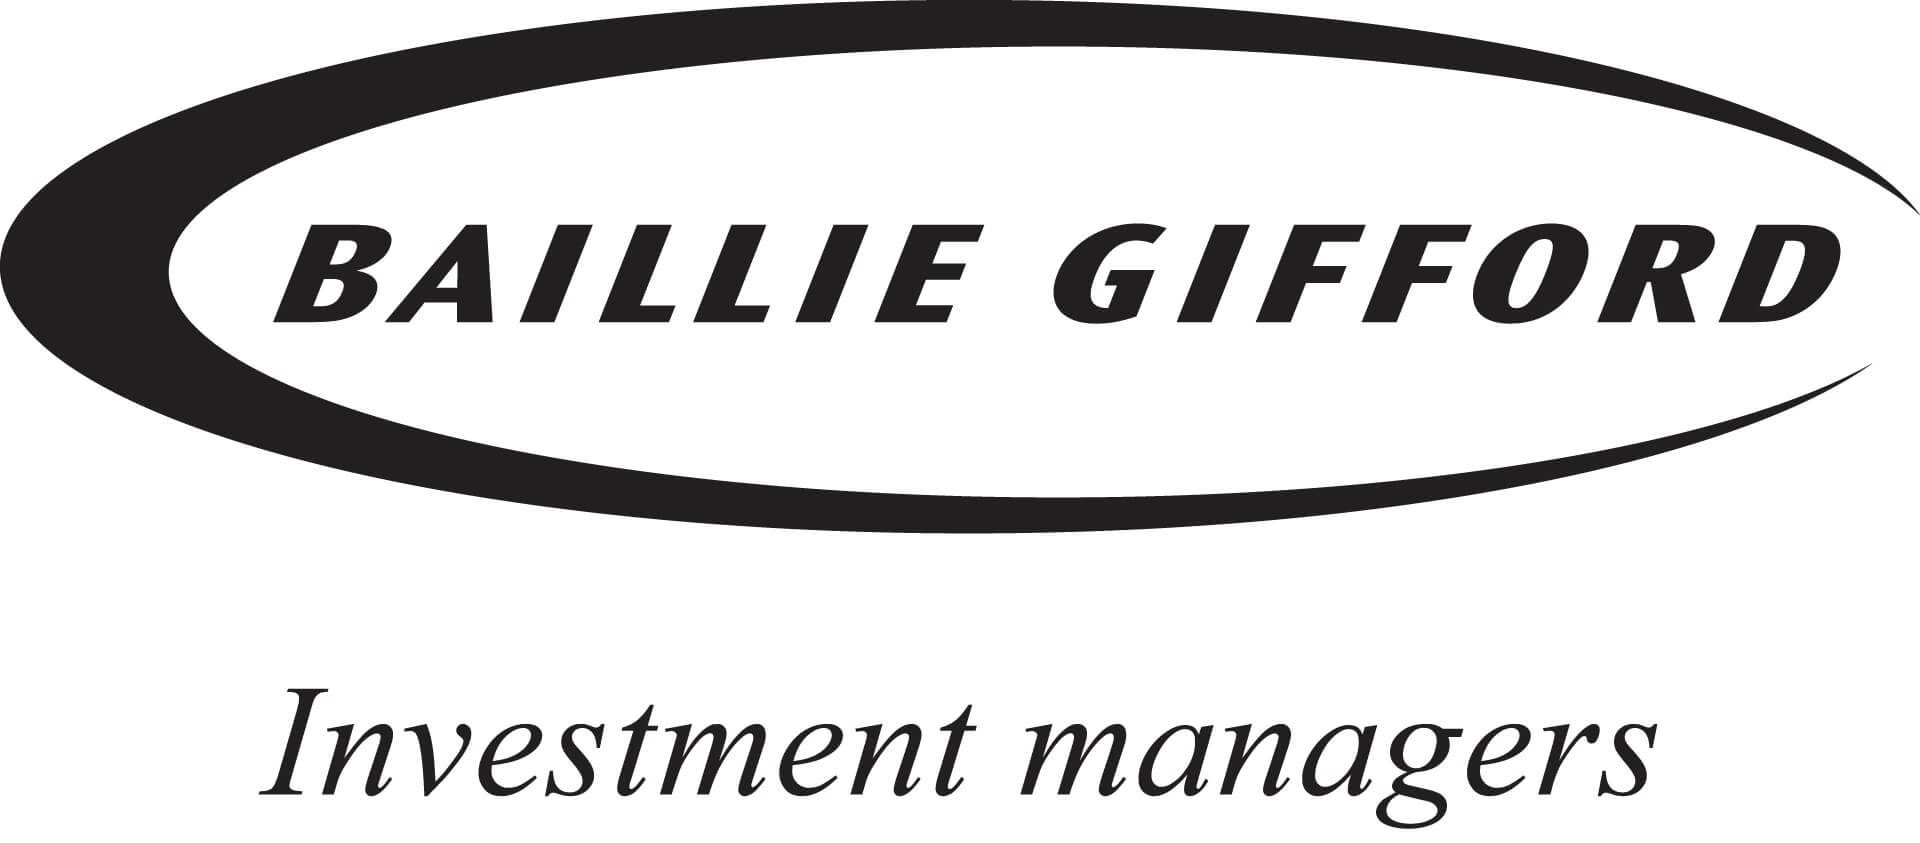 Baillie Gifford Investment Management